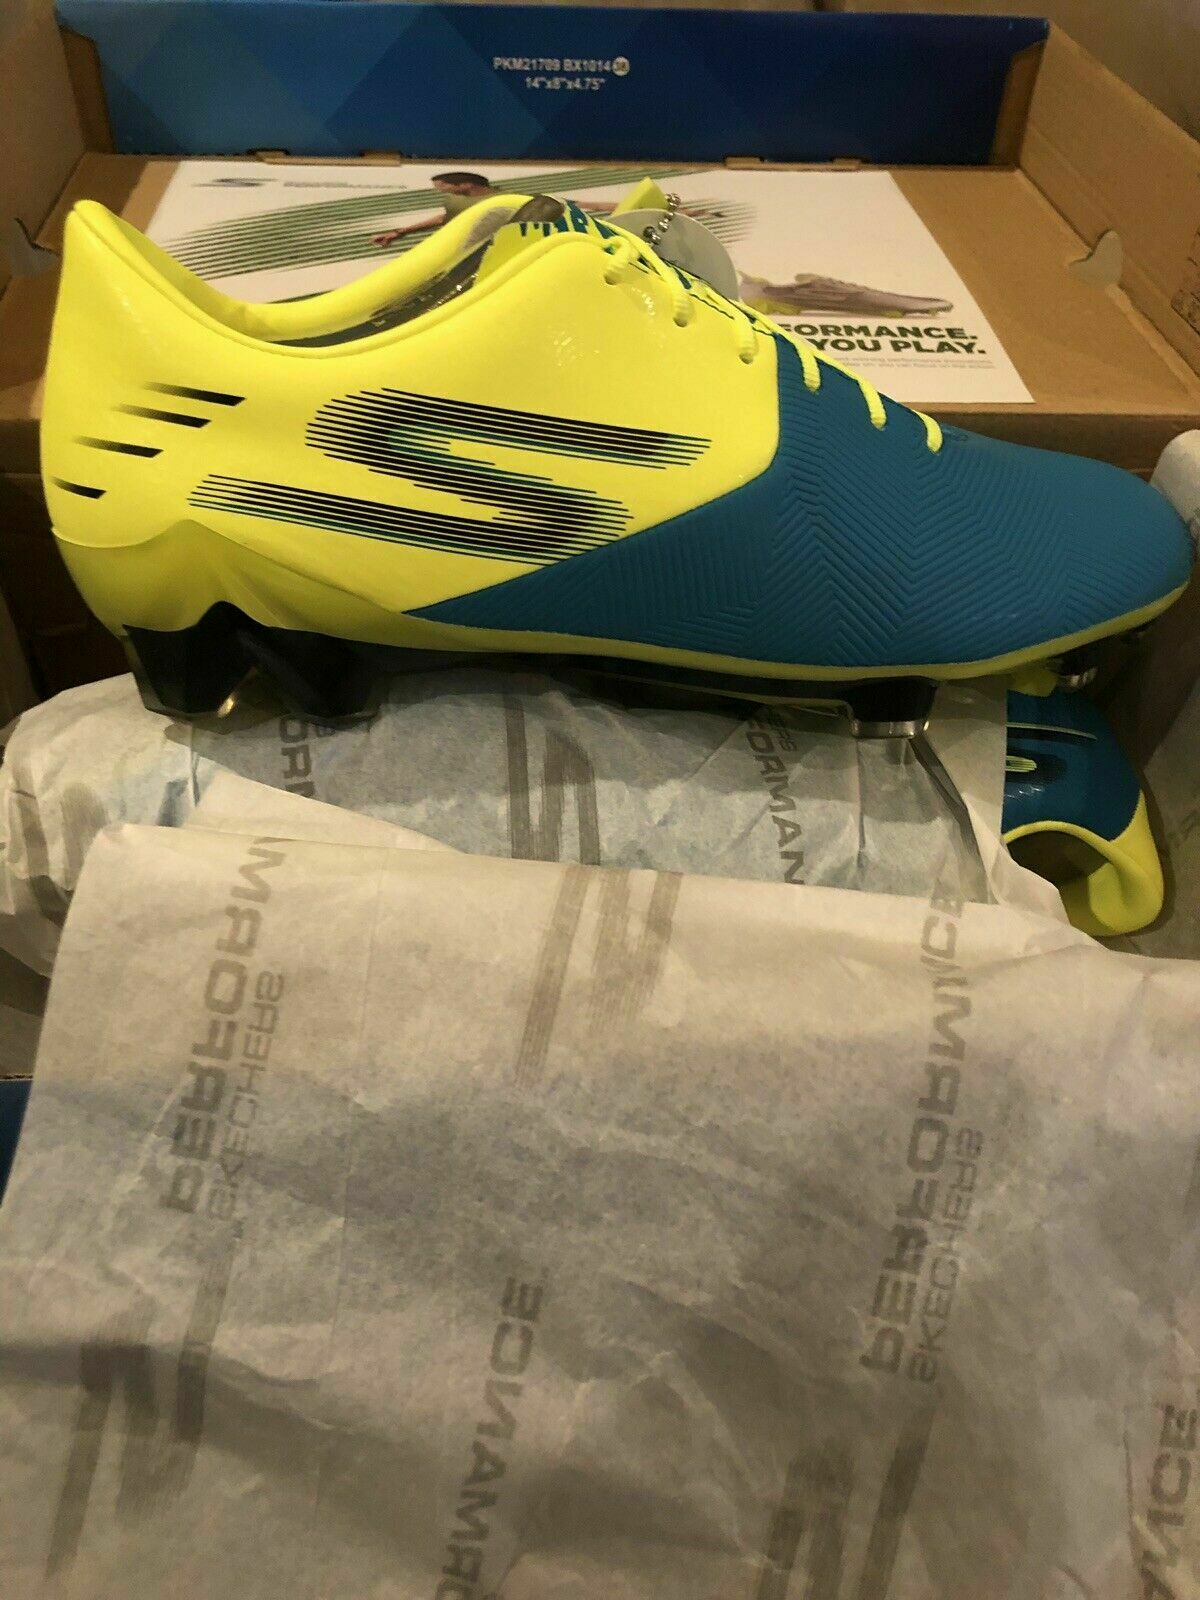 Skechers GO FG Reflex Soccer Cleats shoes Turquoise Lime Mens Size 8.5 New